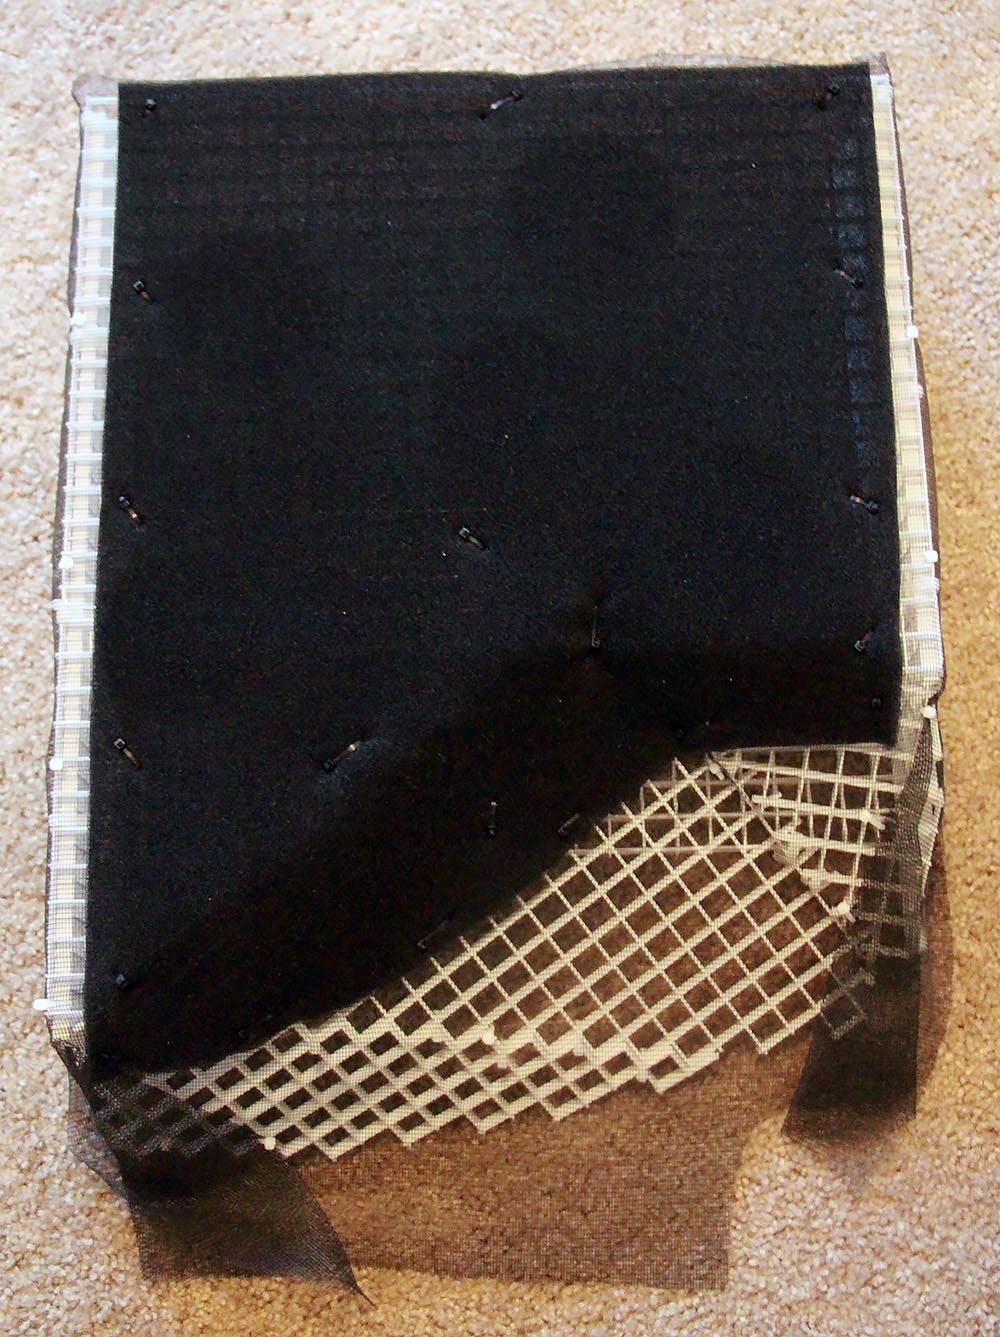 The false bottom constructed of an eggcrate lighting diffuser, window screen, and thin layers of filter foam, allows water to flow freely underneath to filtration systems and overflows.